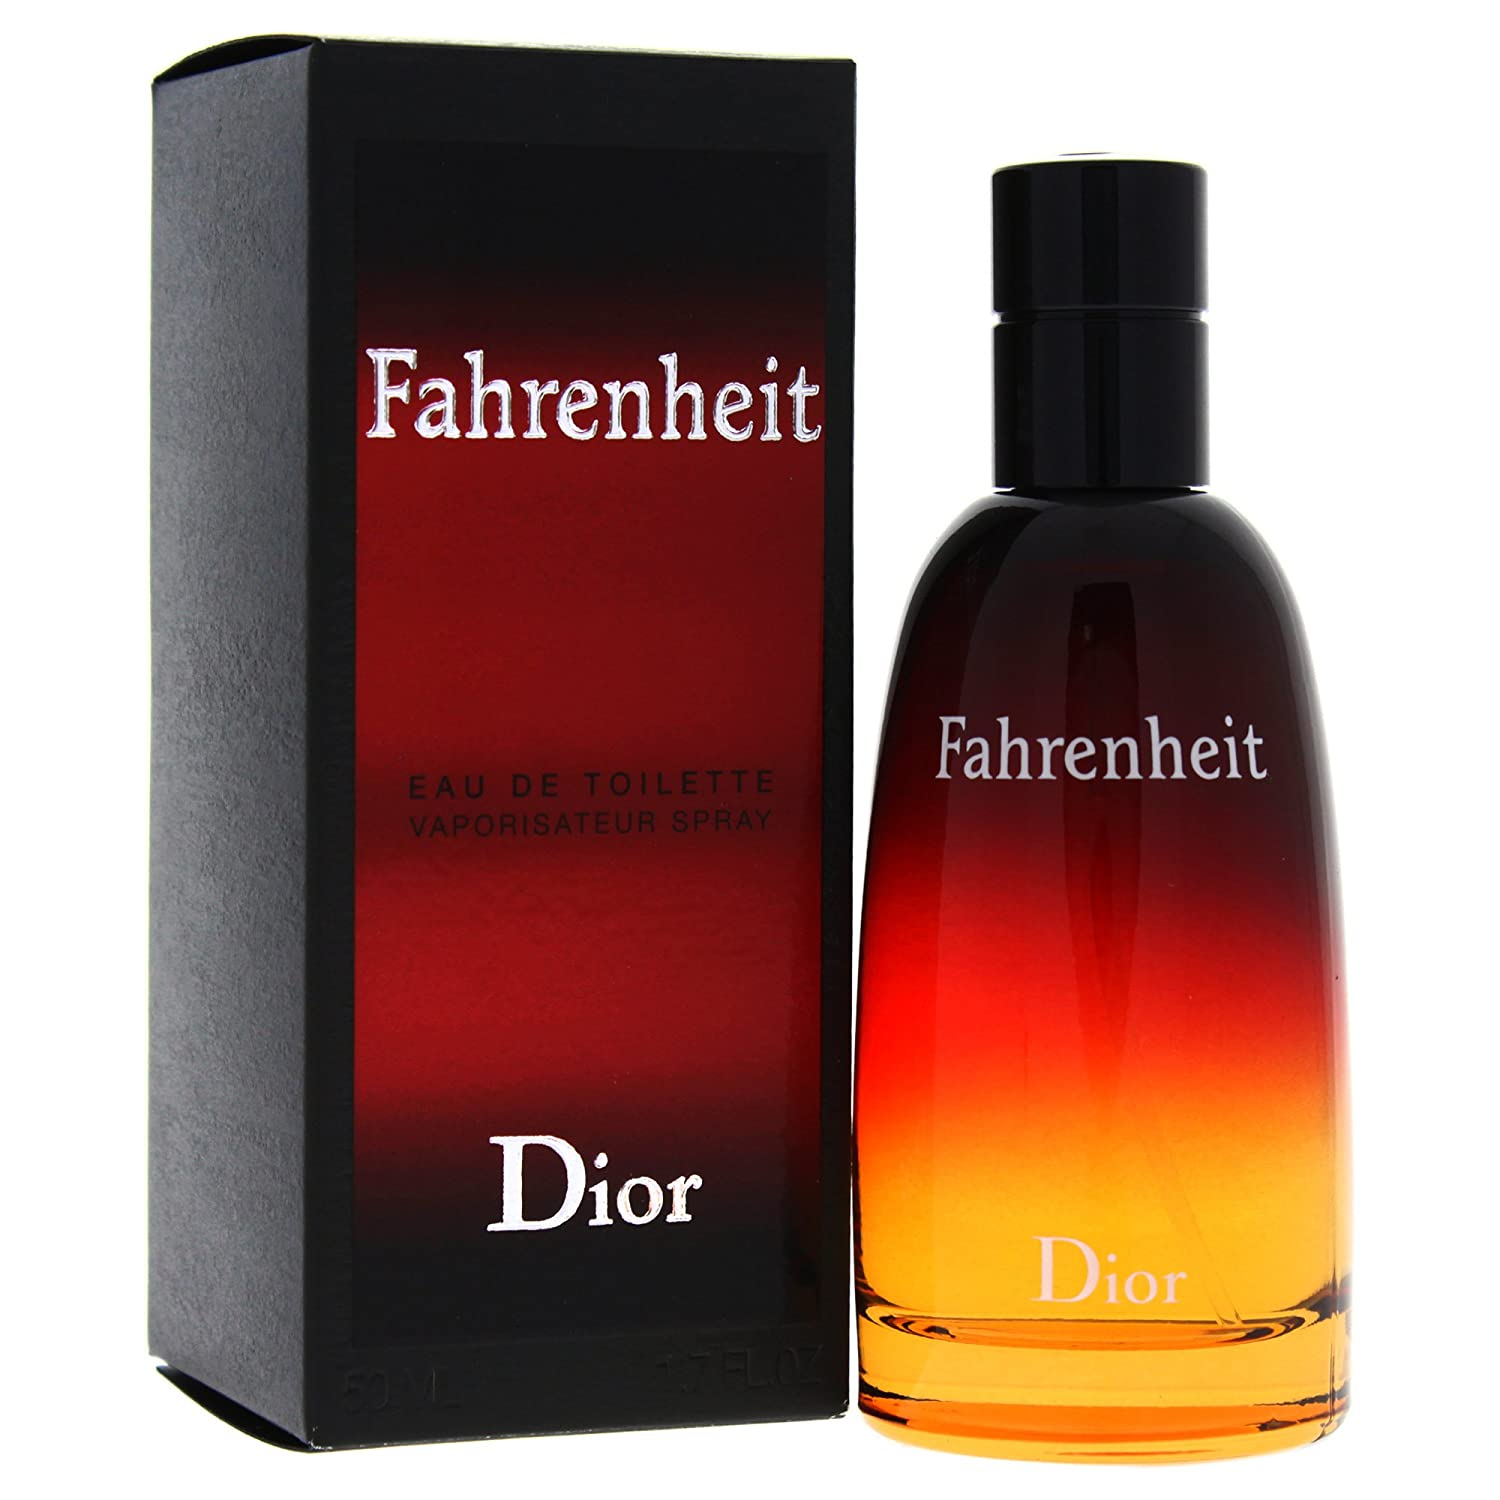 Fahrenheit By Christian Dior For Men. Eau De Toilette Spray 1.7 Ounces 125566 1DX2701_-50ml